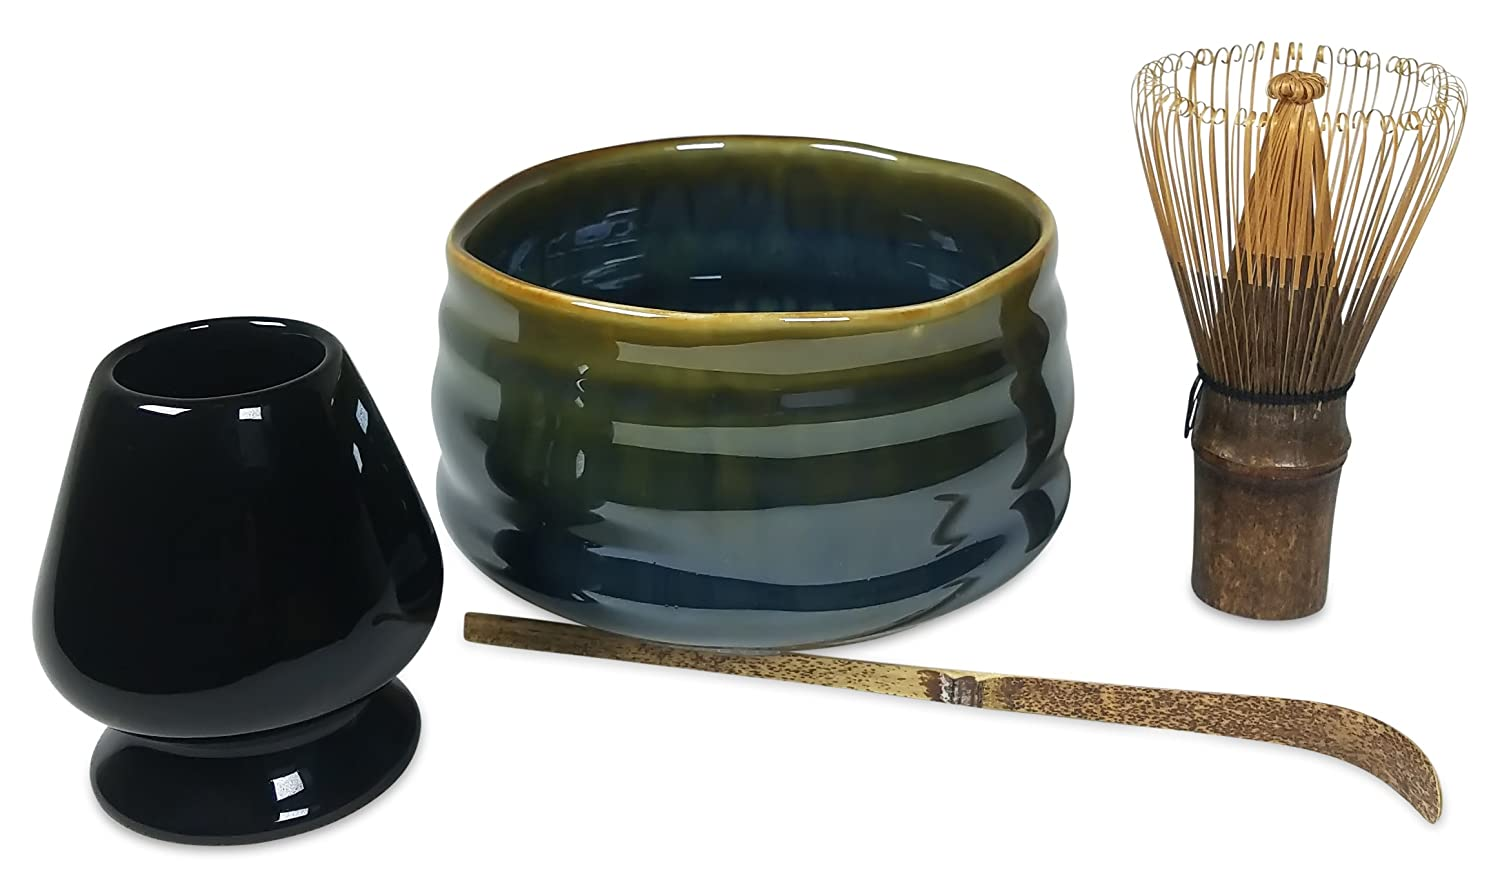 Matcha Tea Set Includes Matcha Bowl, Whisk and Stand for Traditional Japanese Tea Ceremony or Everyday Use by Princeton Wares. (Earth and Sea) 4335465367